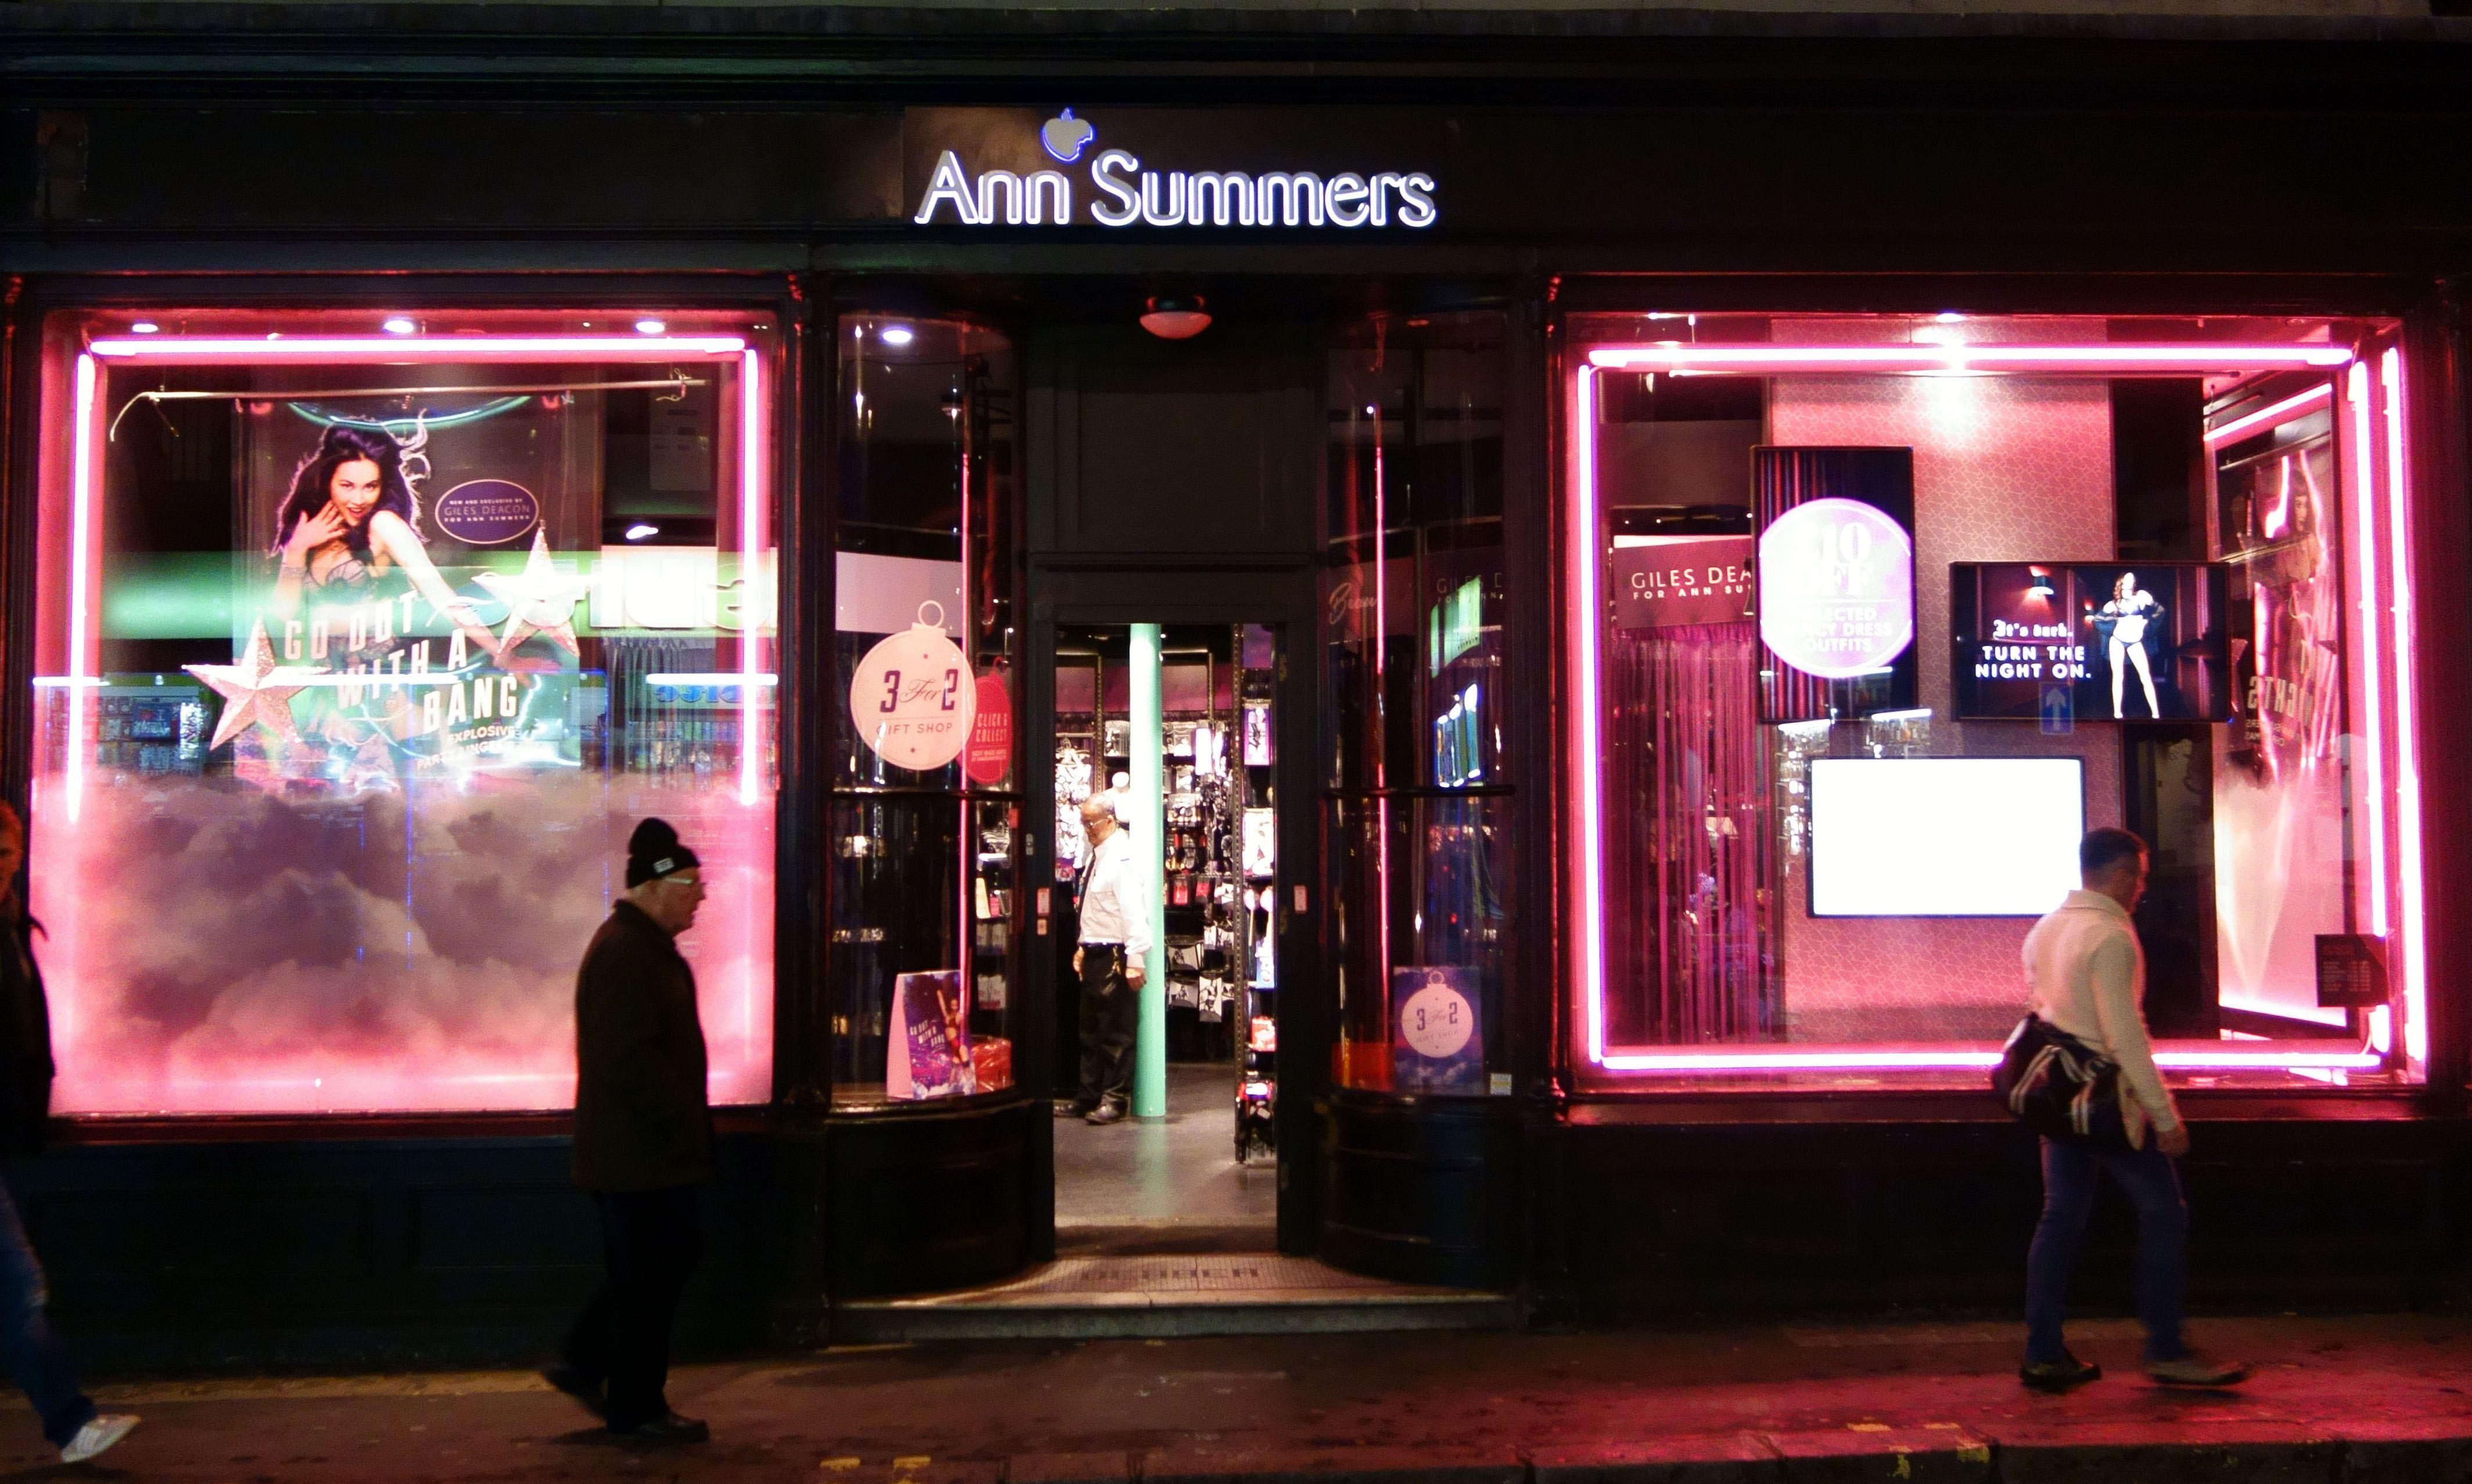 Ann Summers chief criticises landlords over high rents